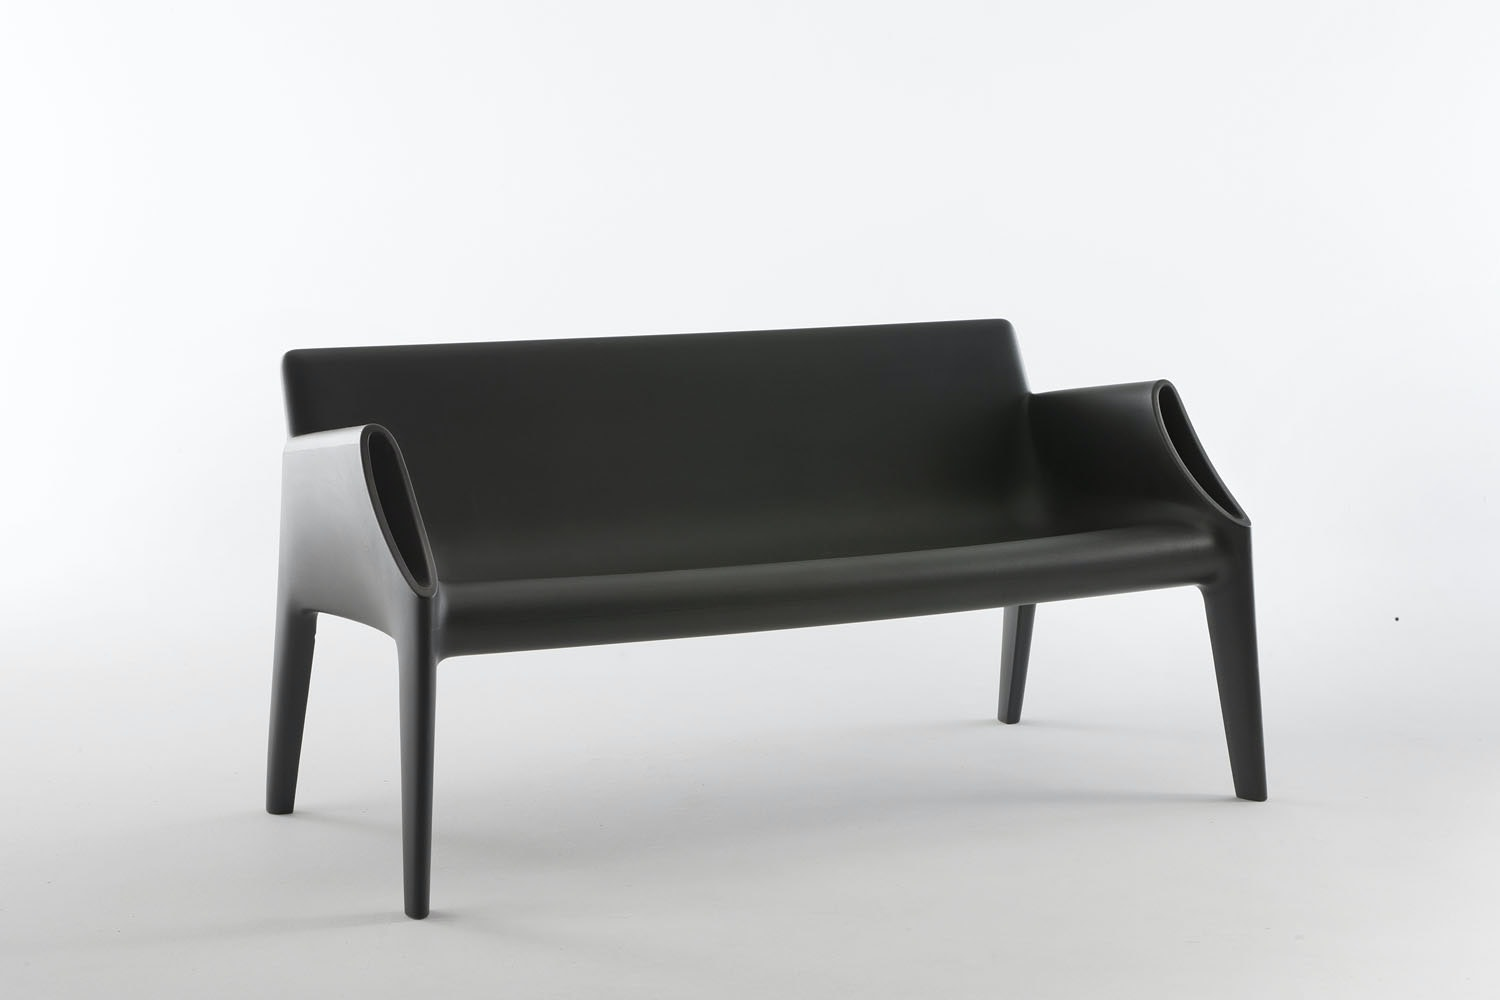 Magic Hole Sofa by Philippe Starck with Eugeni Quitllet for Kartell